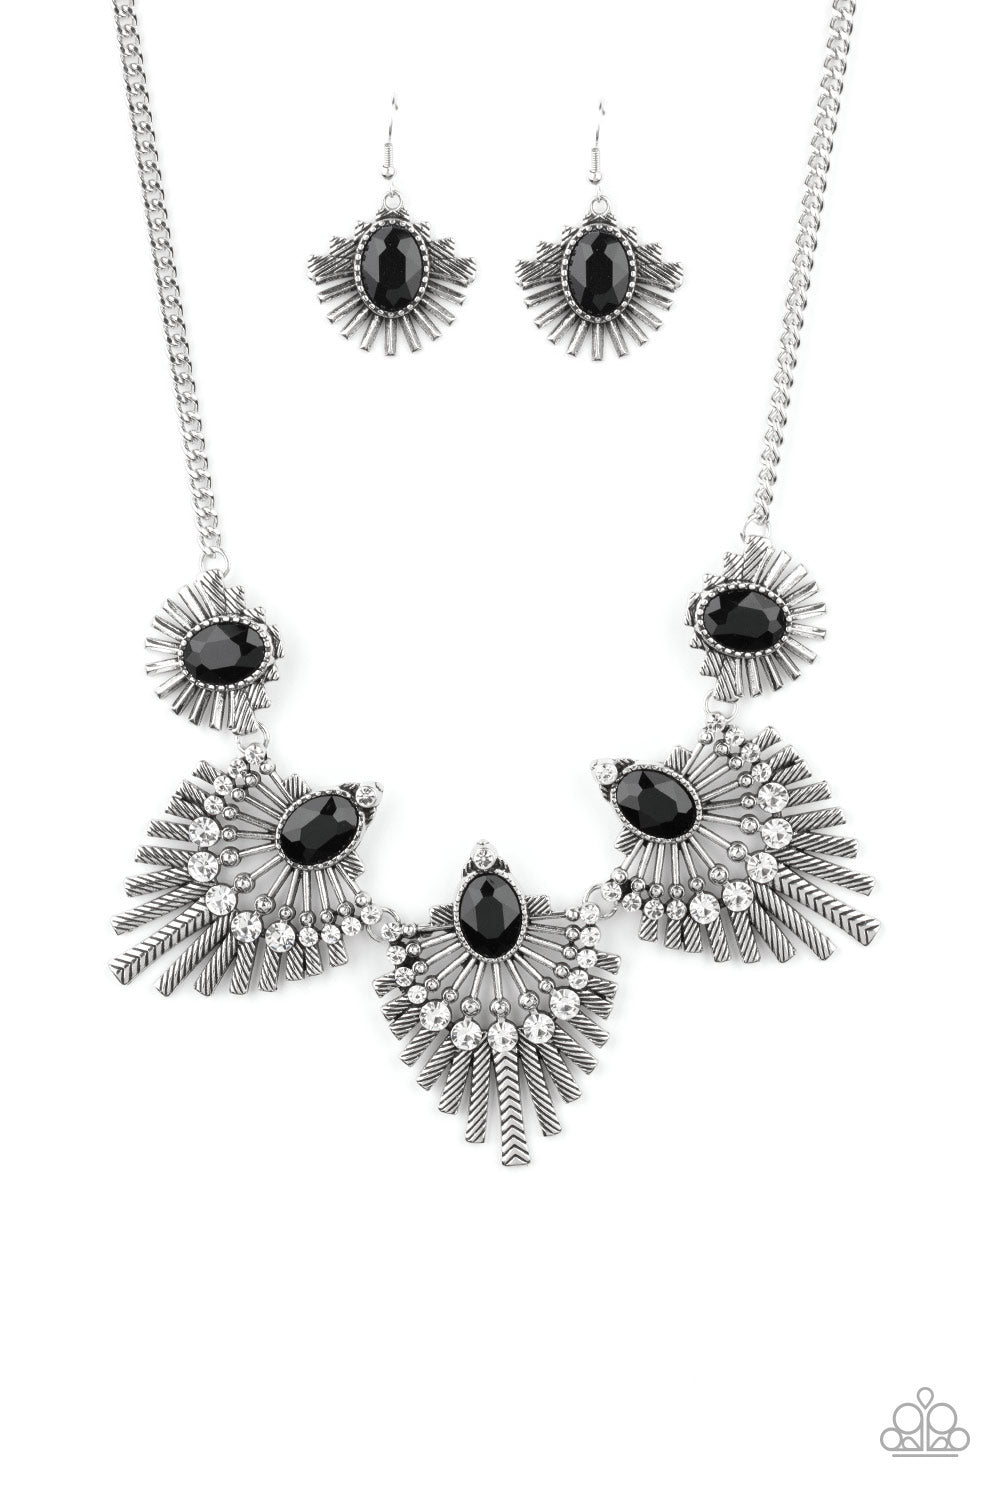 Paparazzi Miss YOU-niverse Black Short Necklace